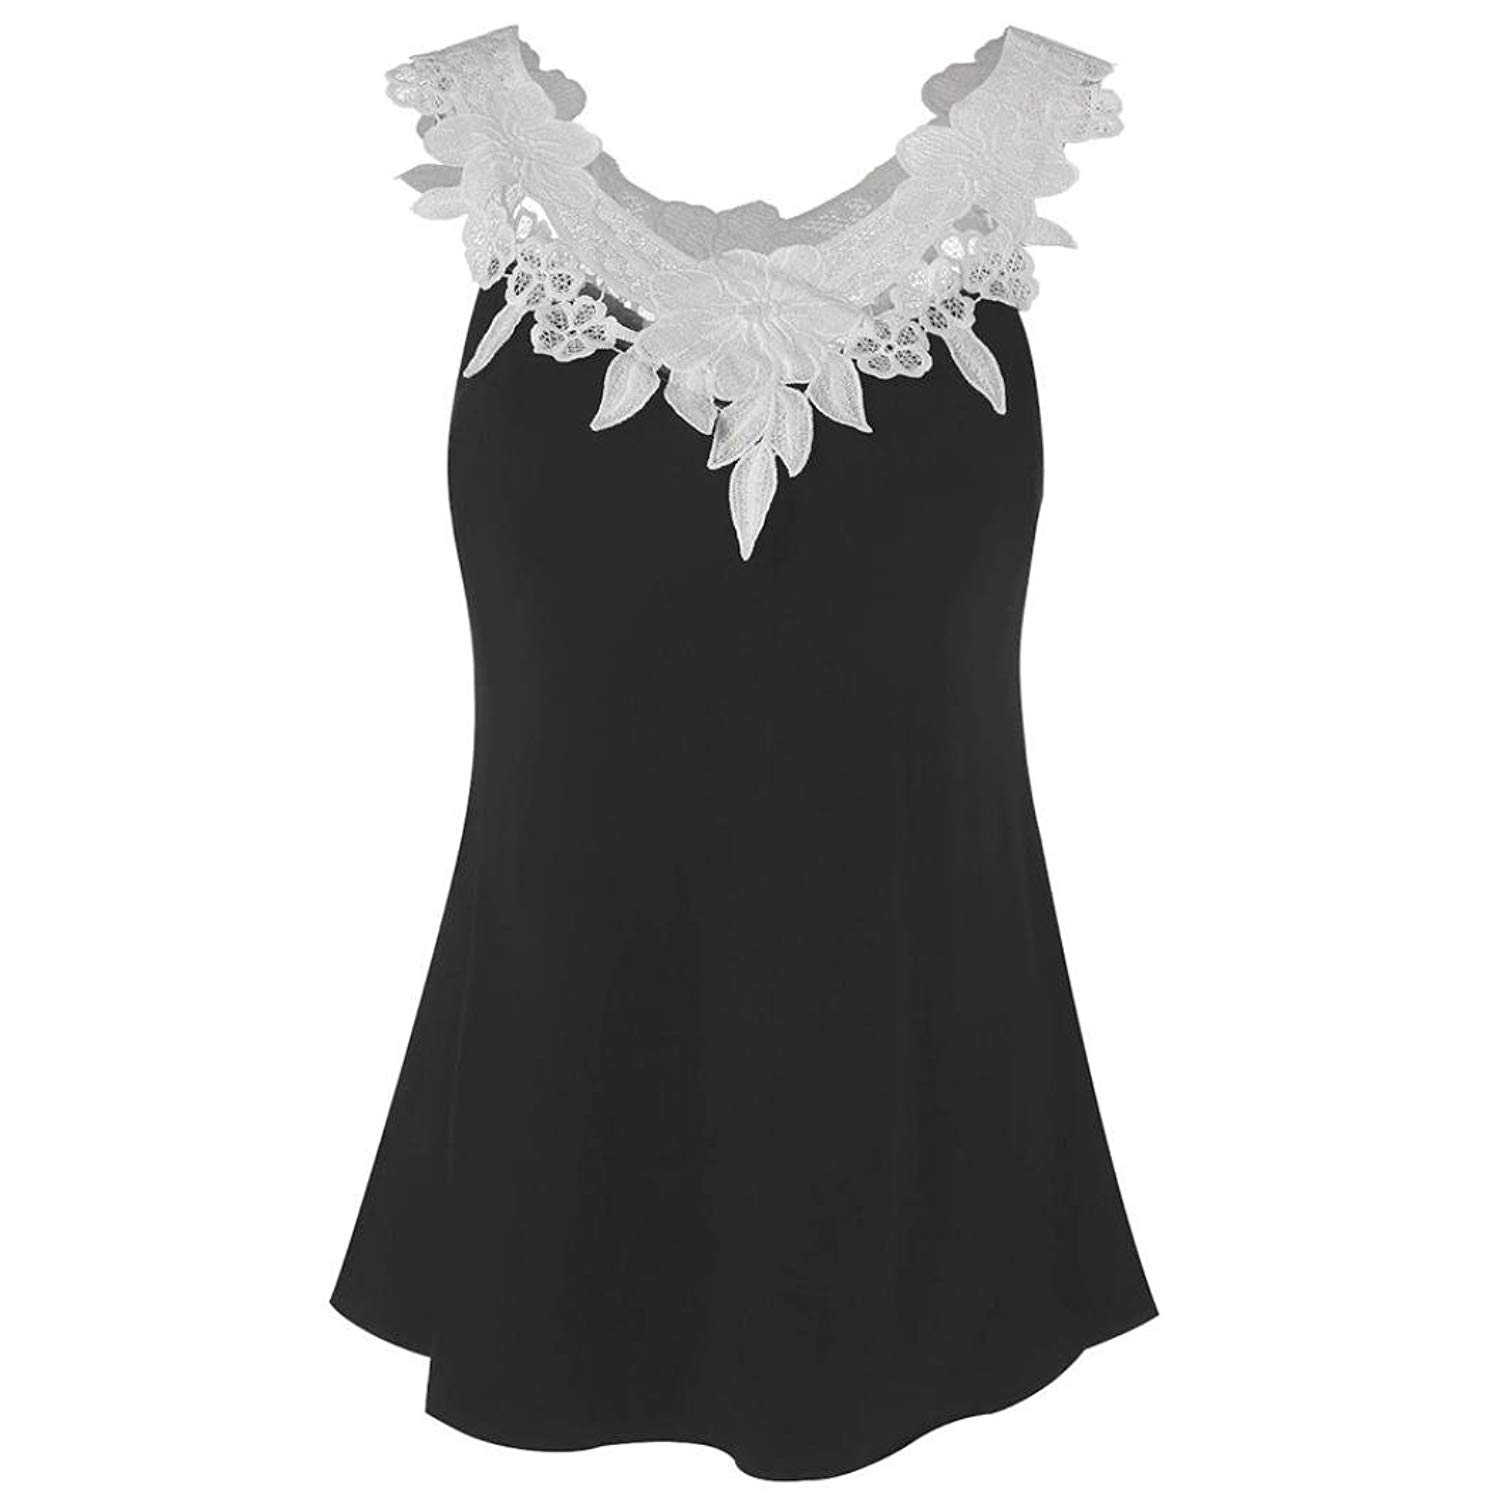 Siaokim Tops For Women Hot Sale Women Tank Tops Fashion Solid Lace Stitching Sleeveless Hollow Out Casual Tunic Blouse